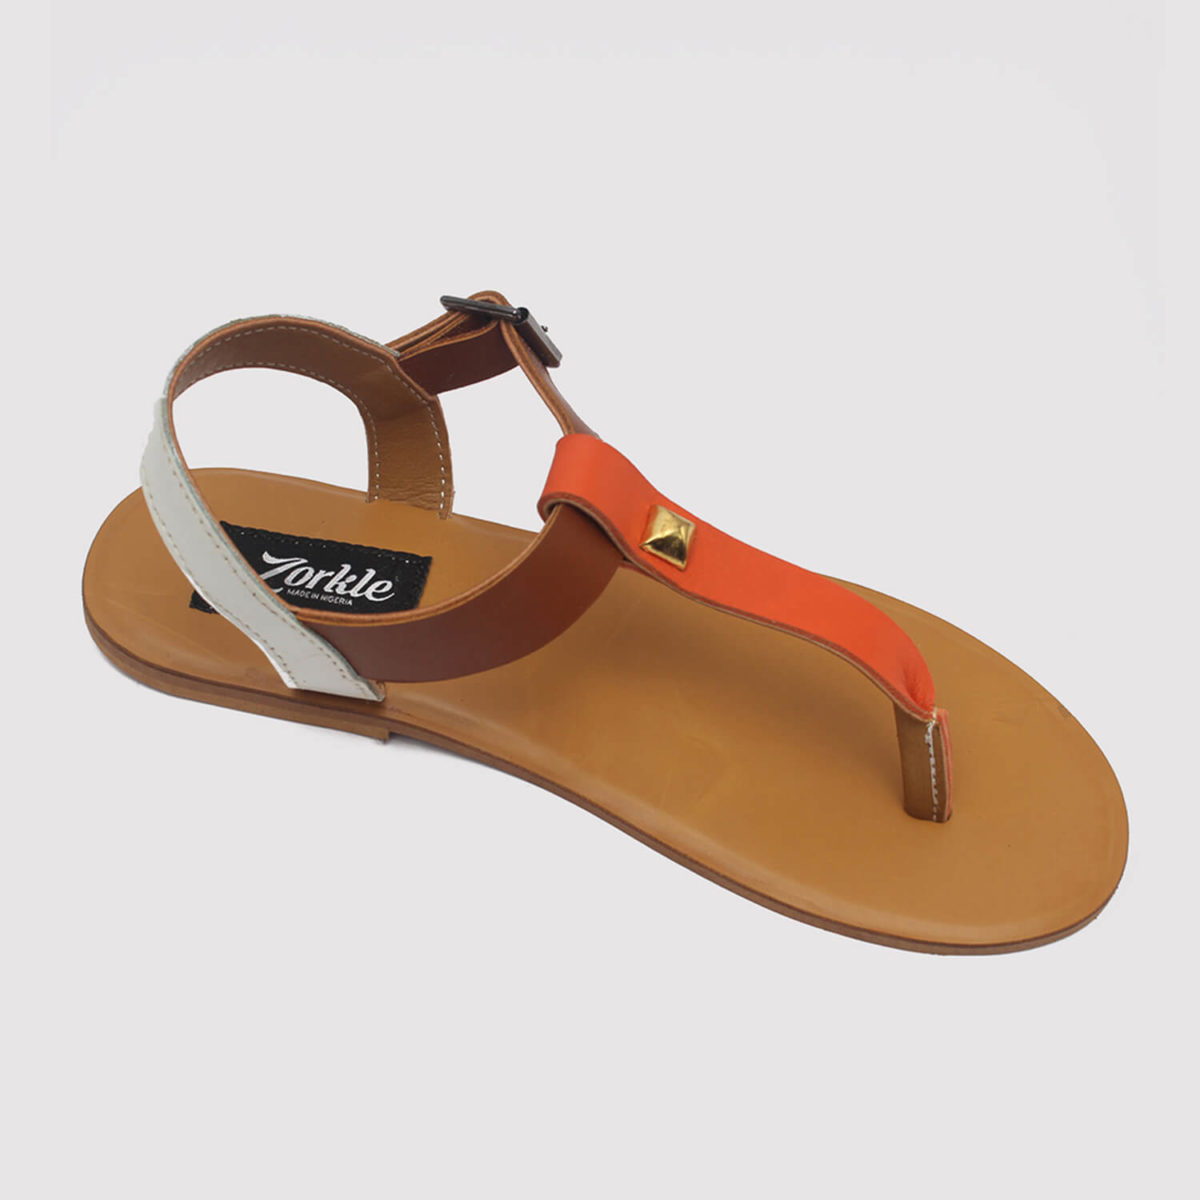 toke sandals orange brown white by zorkle shoes lagos nigeria